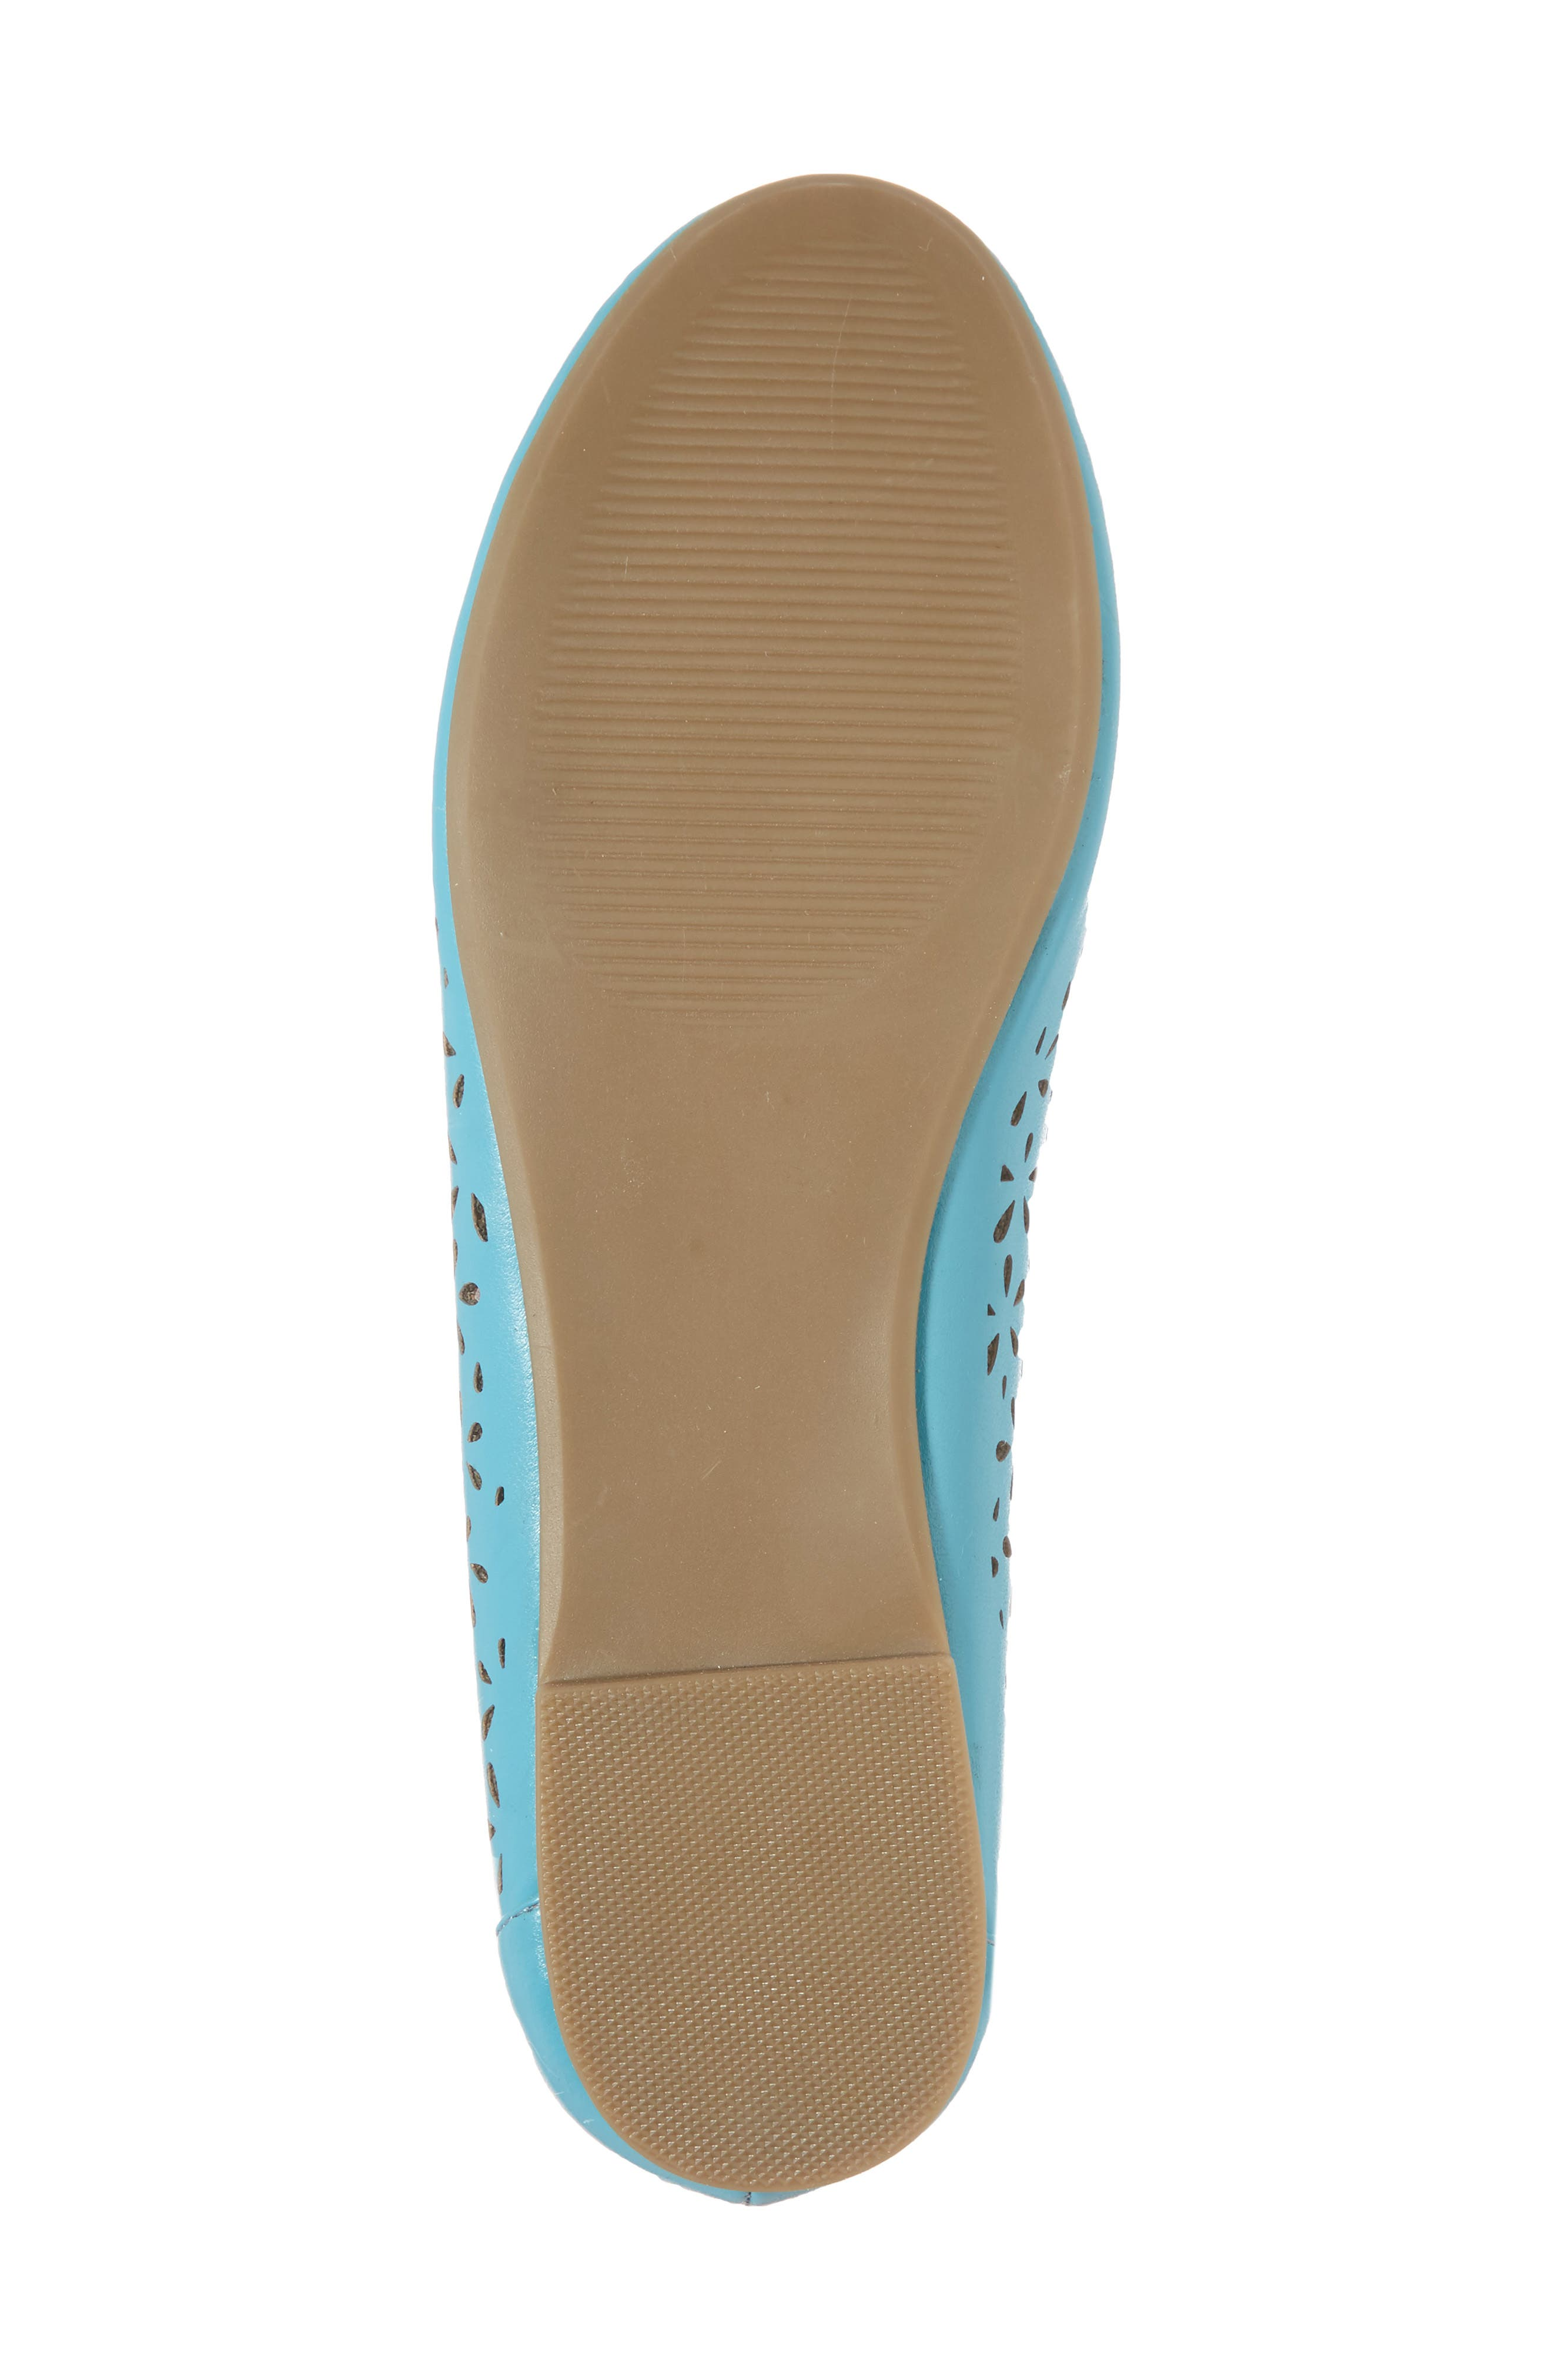 Annora Perforated Flat,                             Alternate thumbnail 6, color,                             Teal Fabric